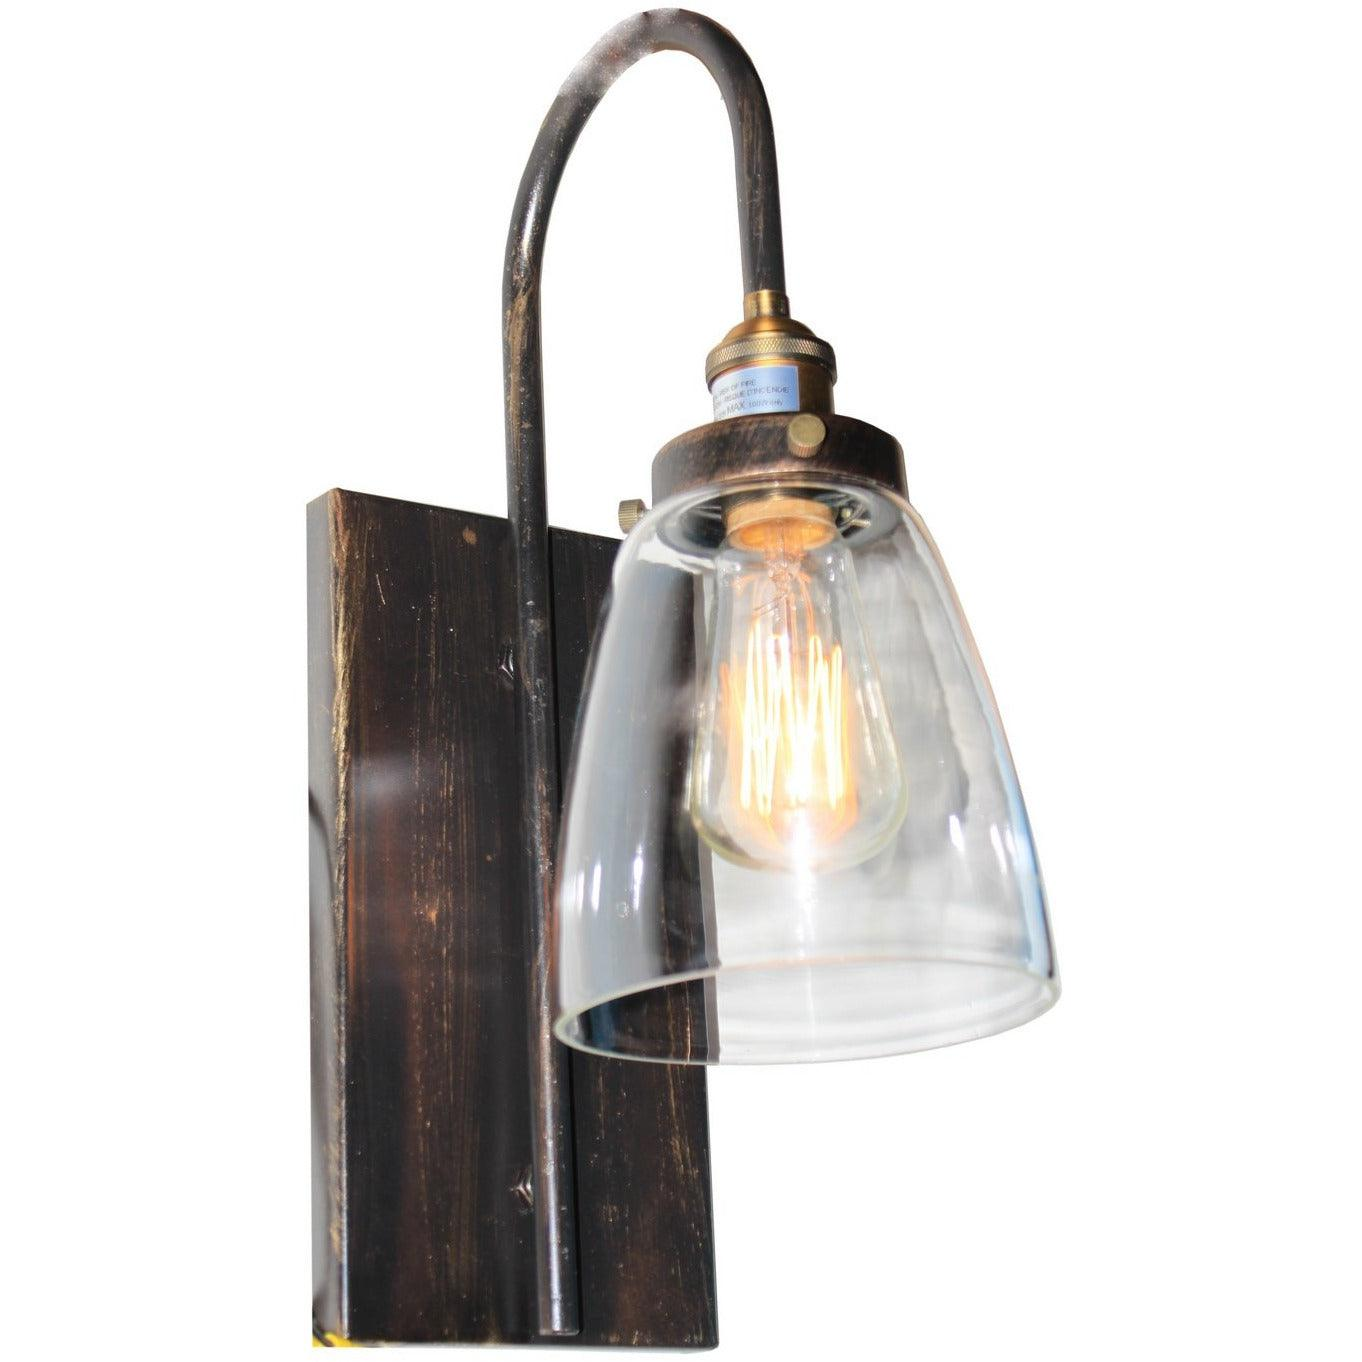 Artcraft Lighting - AC10164 - One Light Wall Sconce - Greenwich - Bronze & Copper